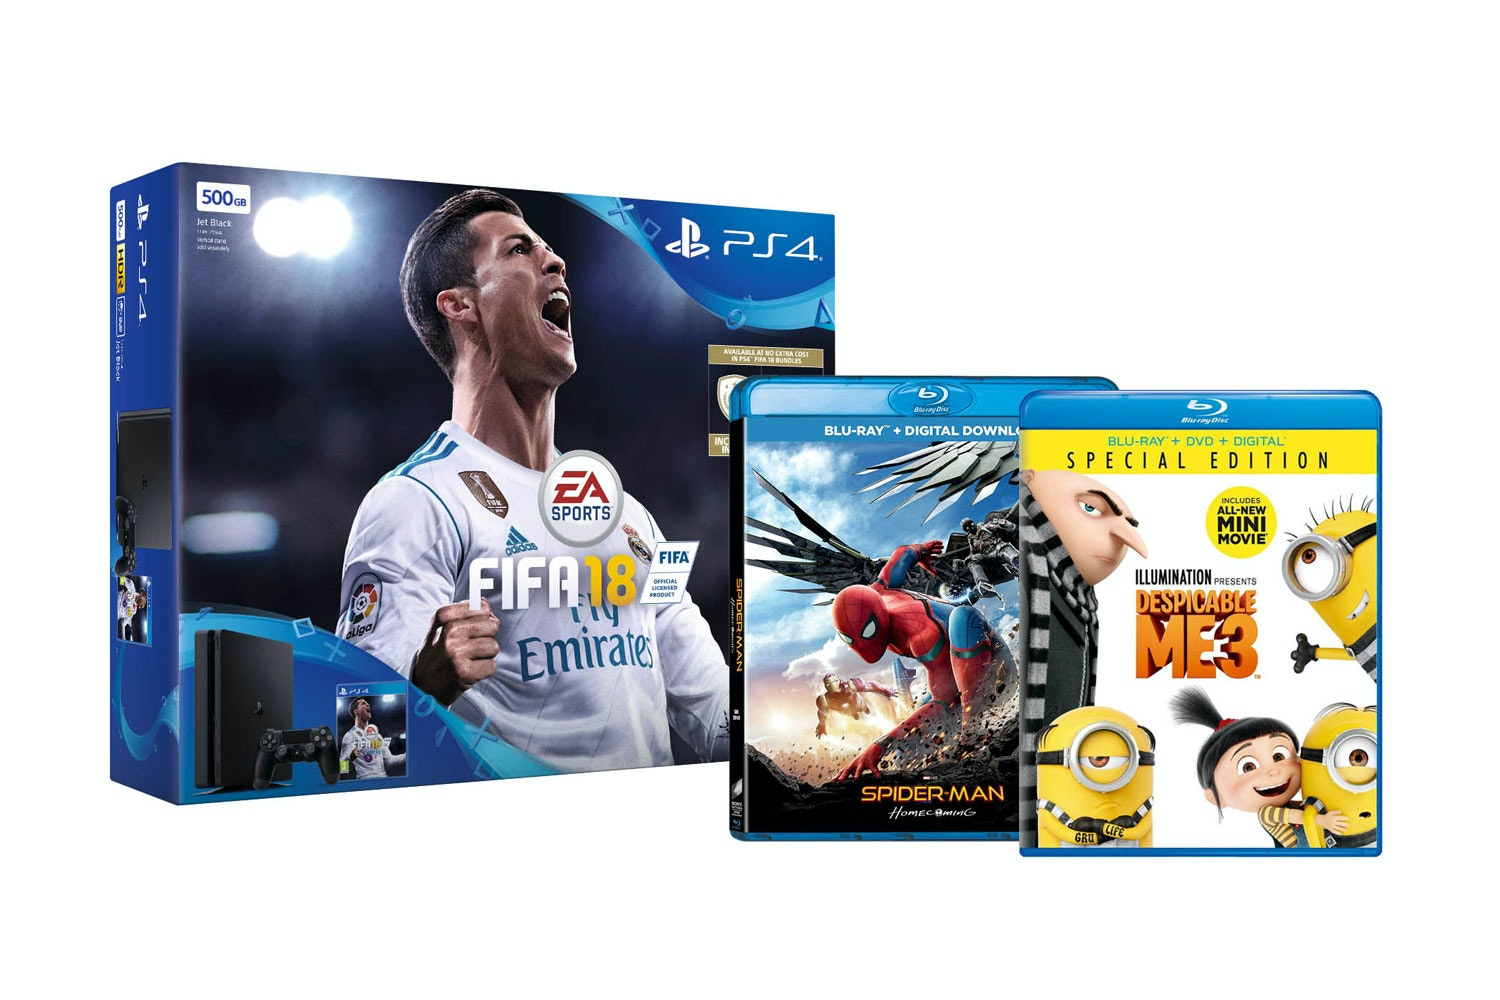 PS4 500GB FIFA 18 Action Bundle | Spiderman: Homecoming & Despicable Me 3